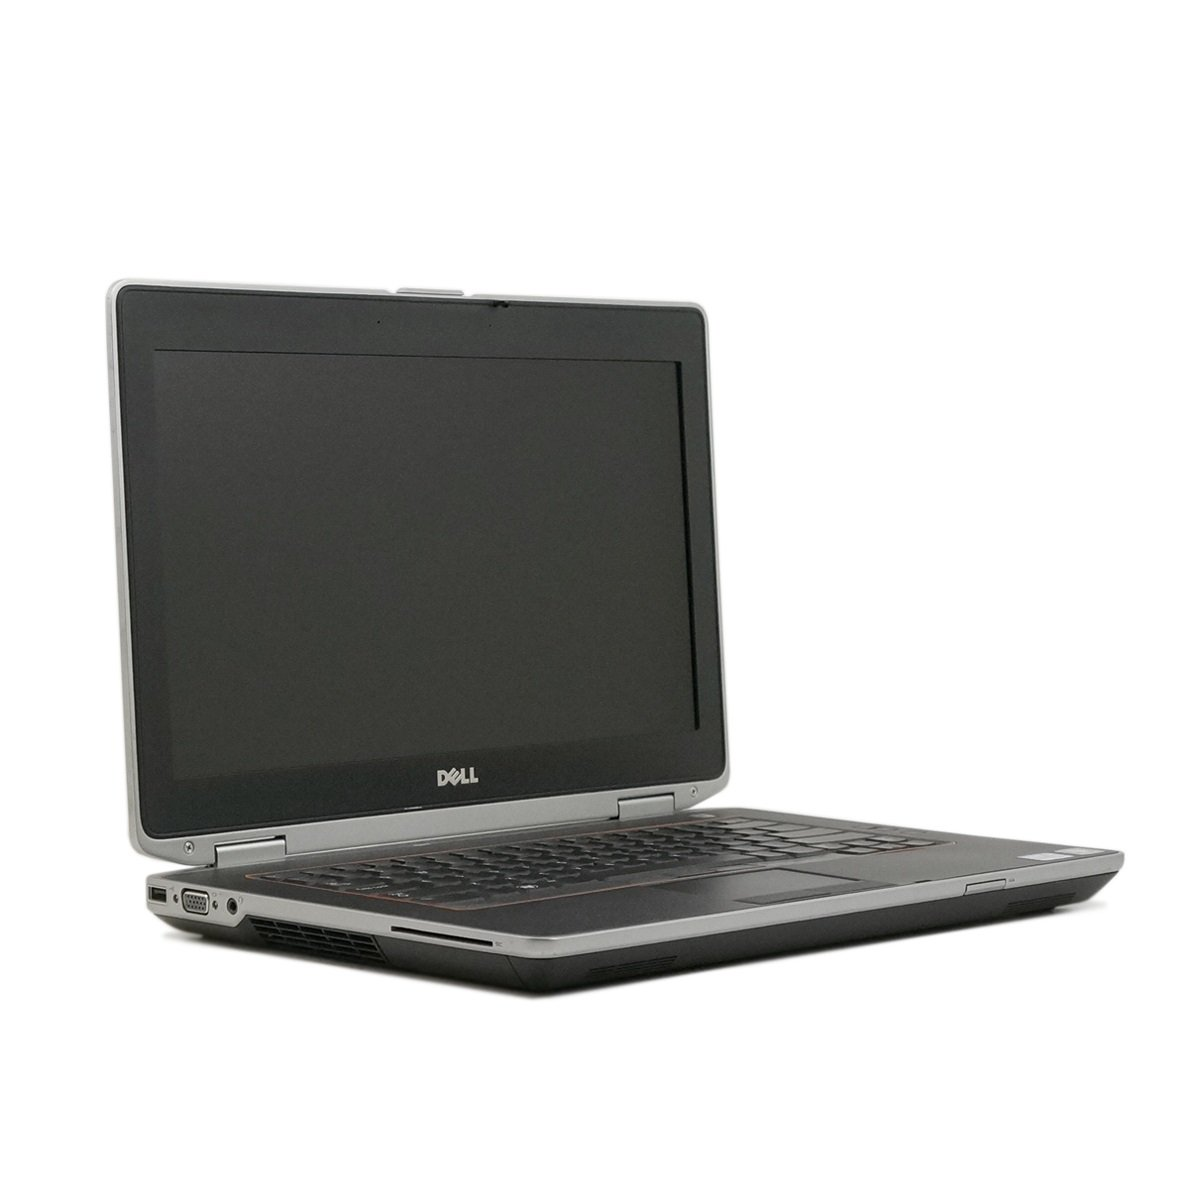 Amazon.com: Dell Latitude E6420 Core i7 2640M 2.8GHz 8GB 320GB Intel 14.1